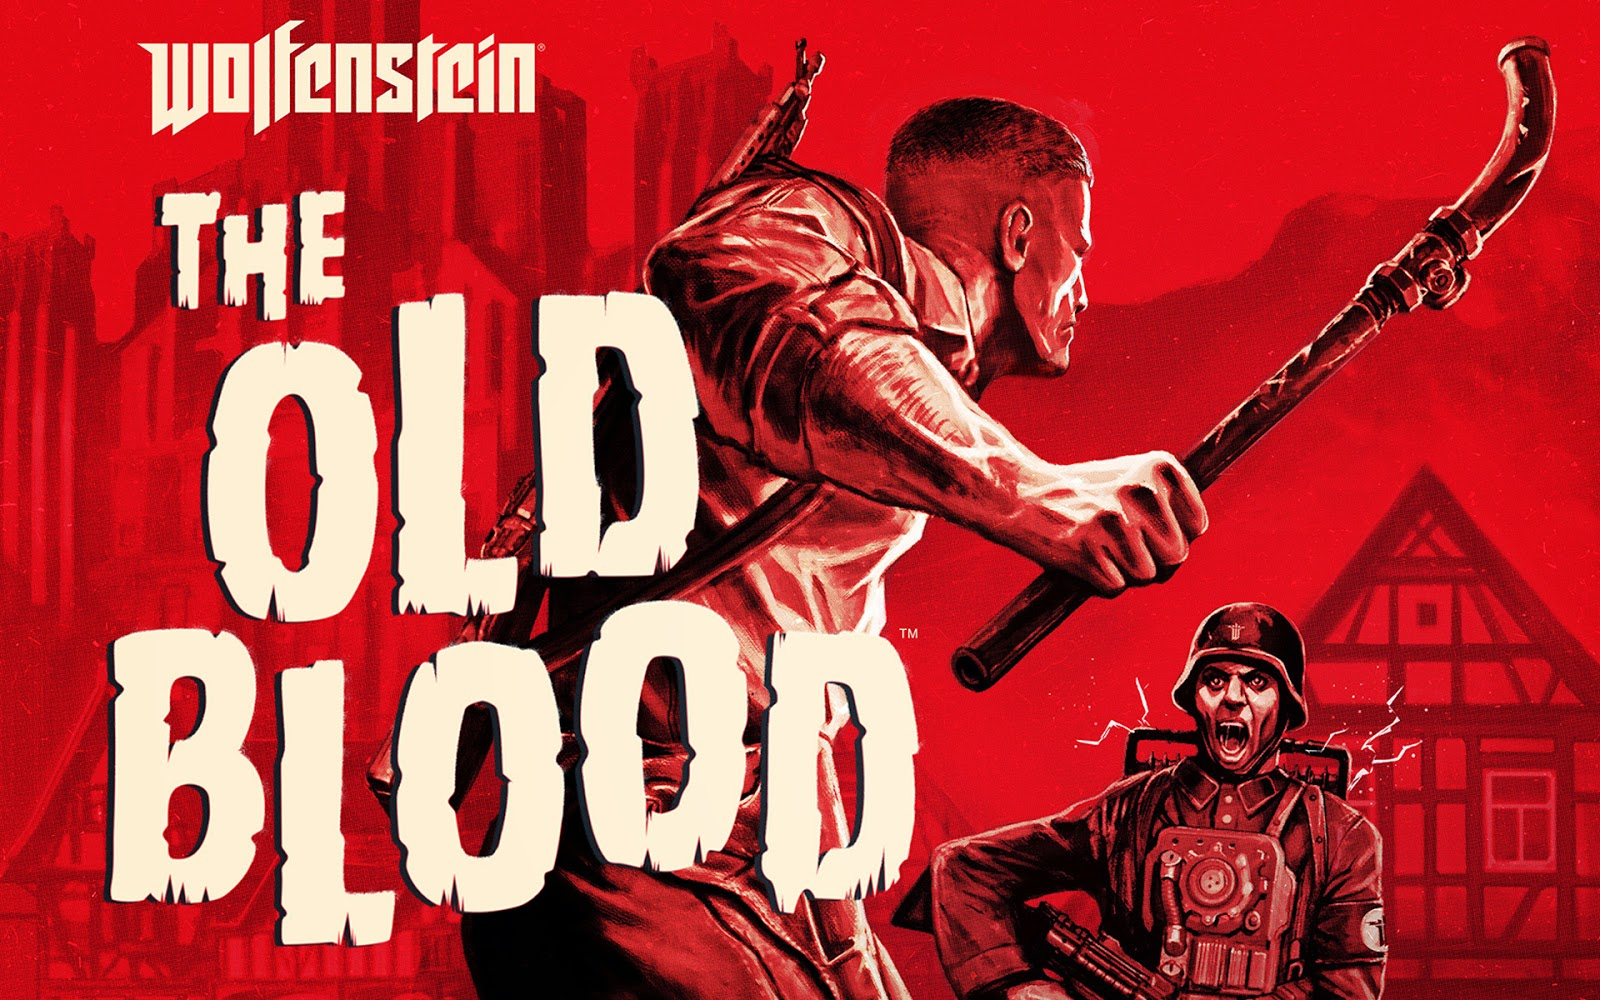 Programa 8x28 (22-05-2015) 'Wolfenstein The Old Blood' Wolfenstein-the-old-blood